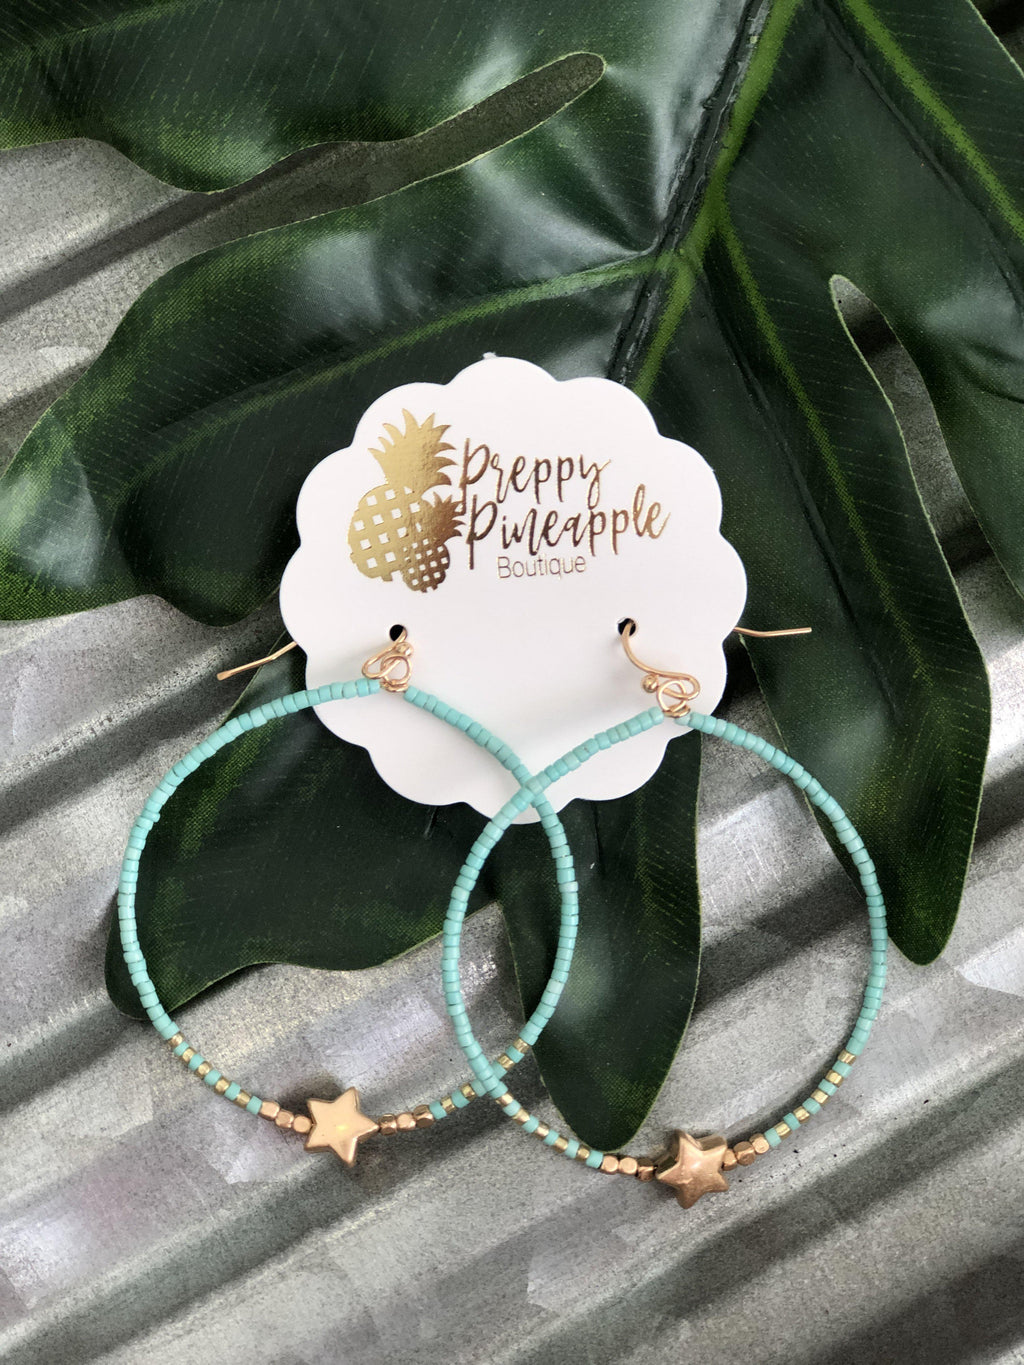 Courtney Earrings - Preppy Pineapple